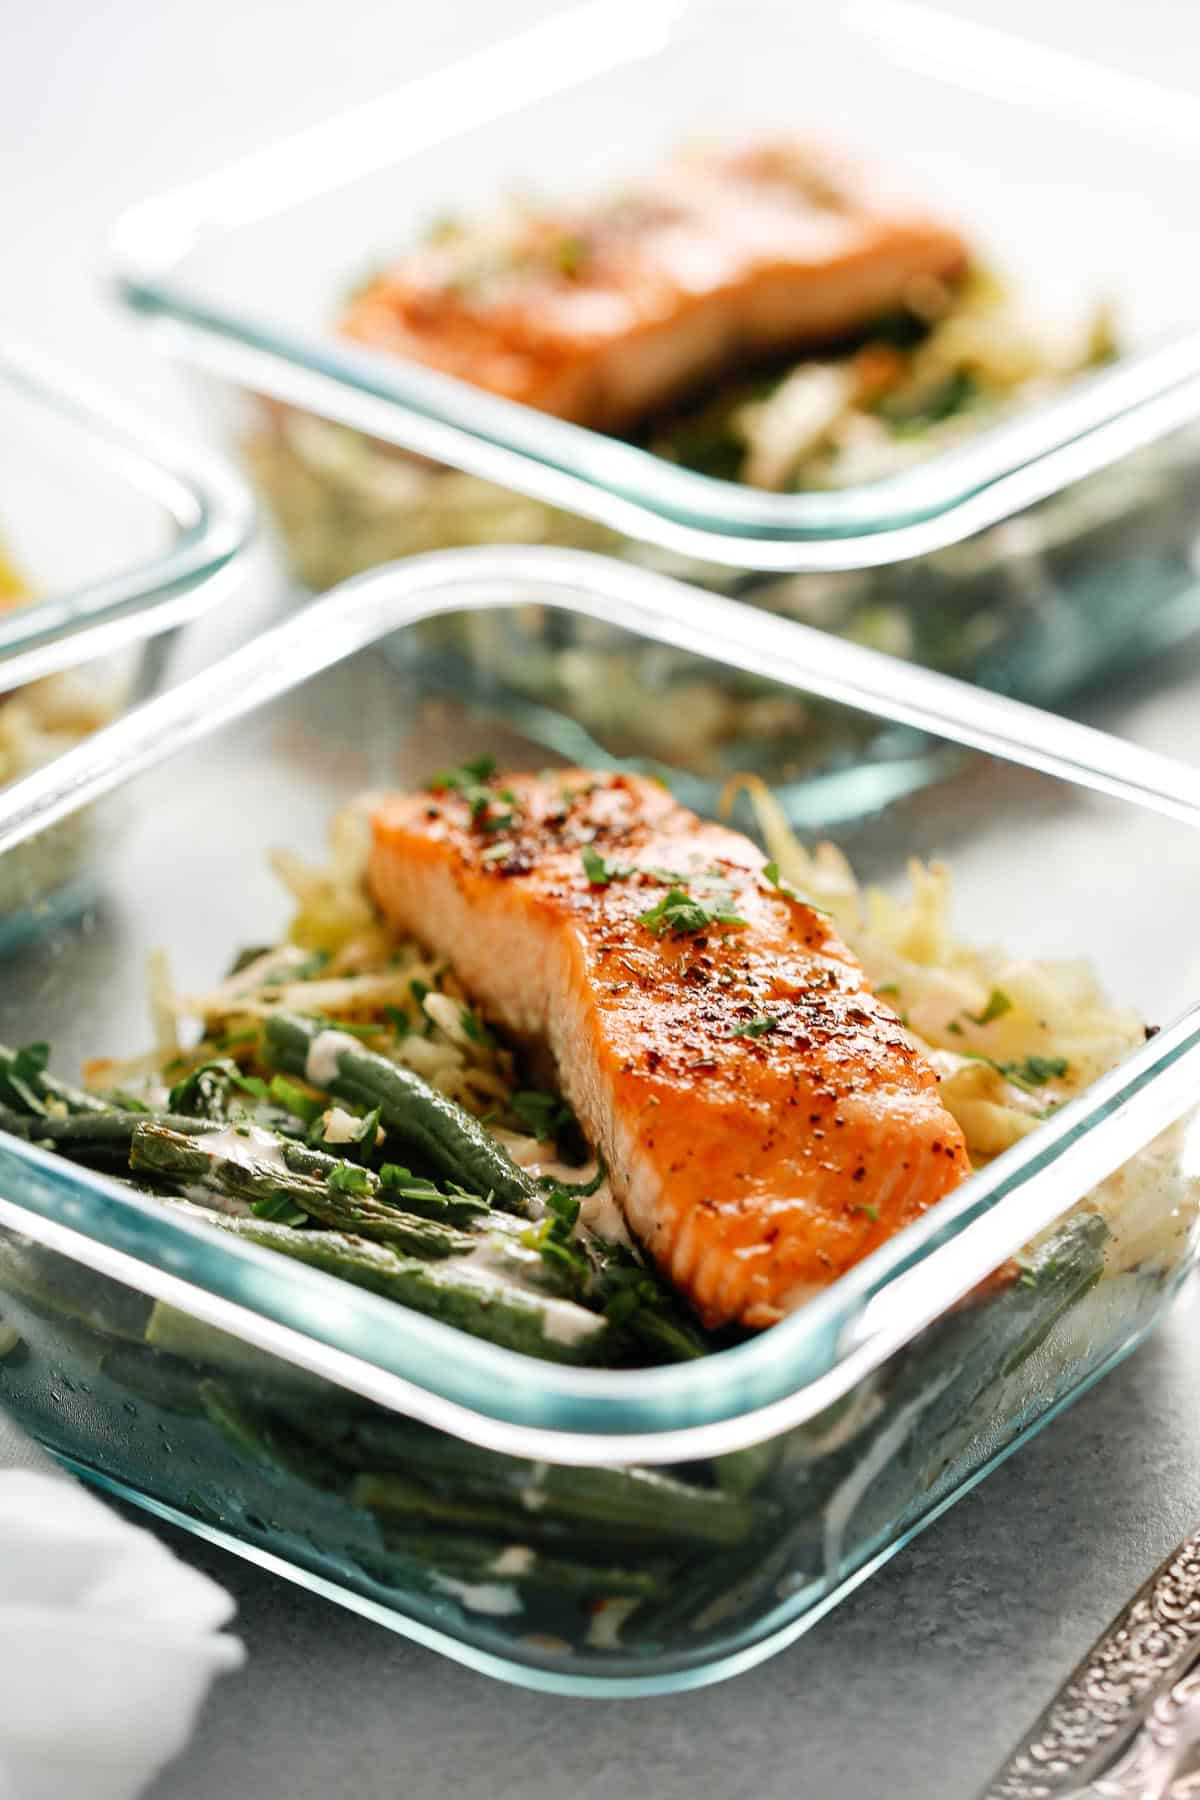 broiled salmon filet in square glass container with green beans and cabbage